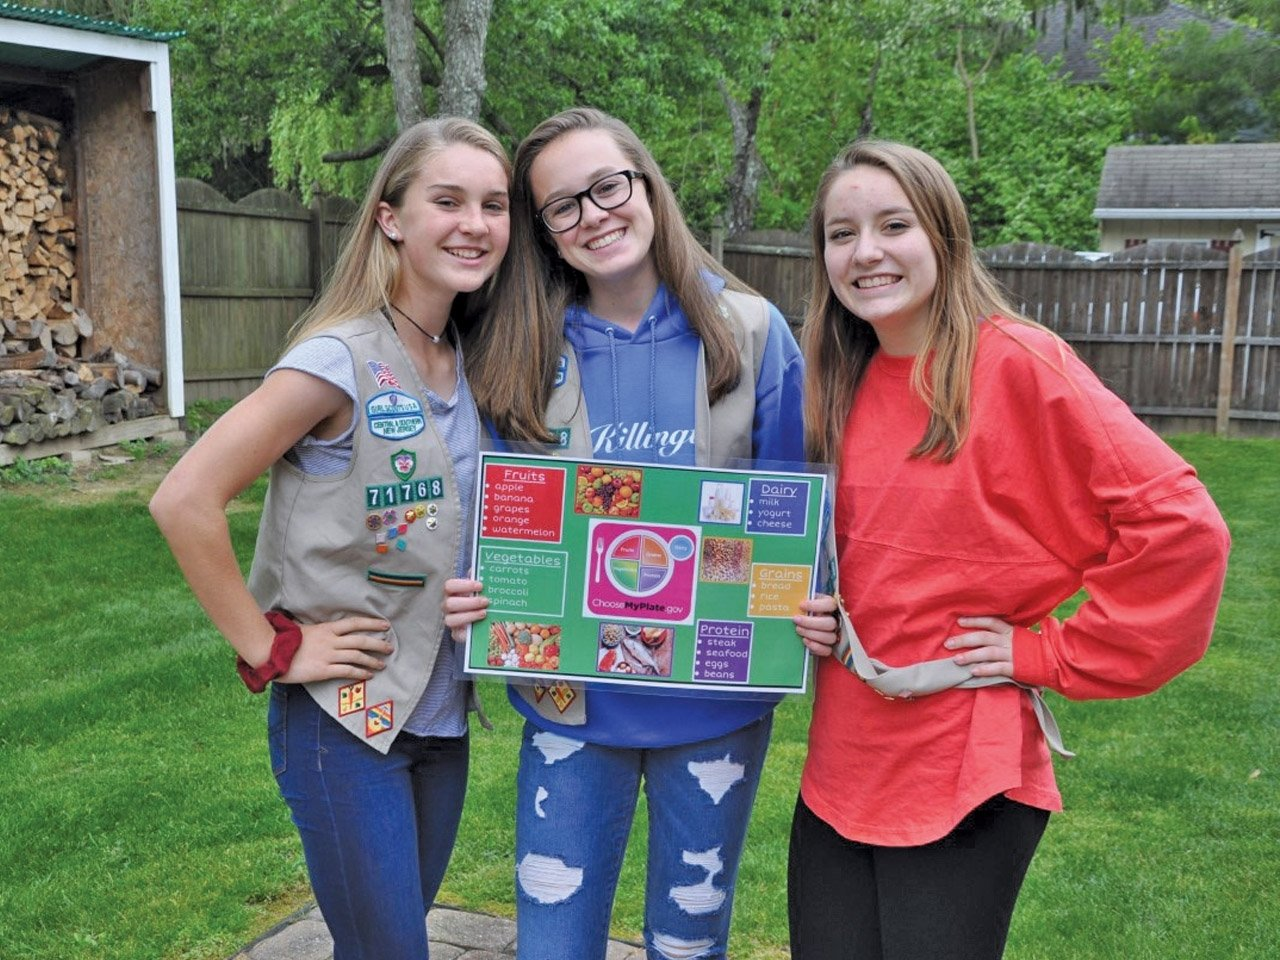 10 Fantastic Girl Scout Silver Award Ideas lawrence girl scouts teach the art of healthy food to earn silver award 2 2020